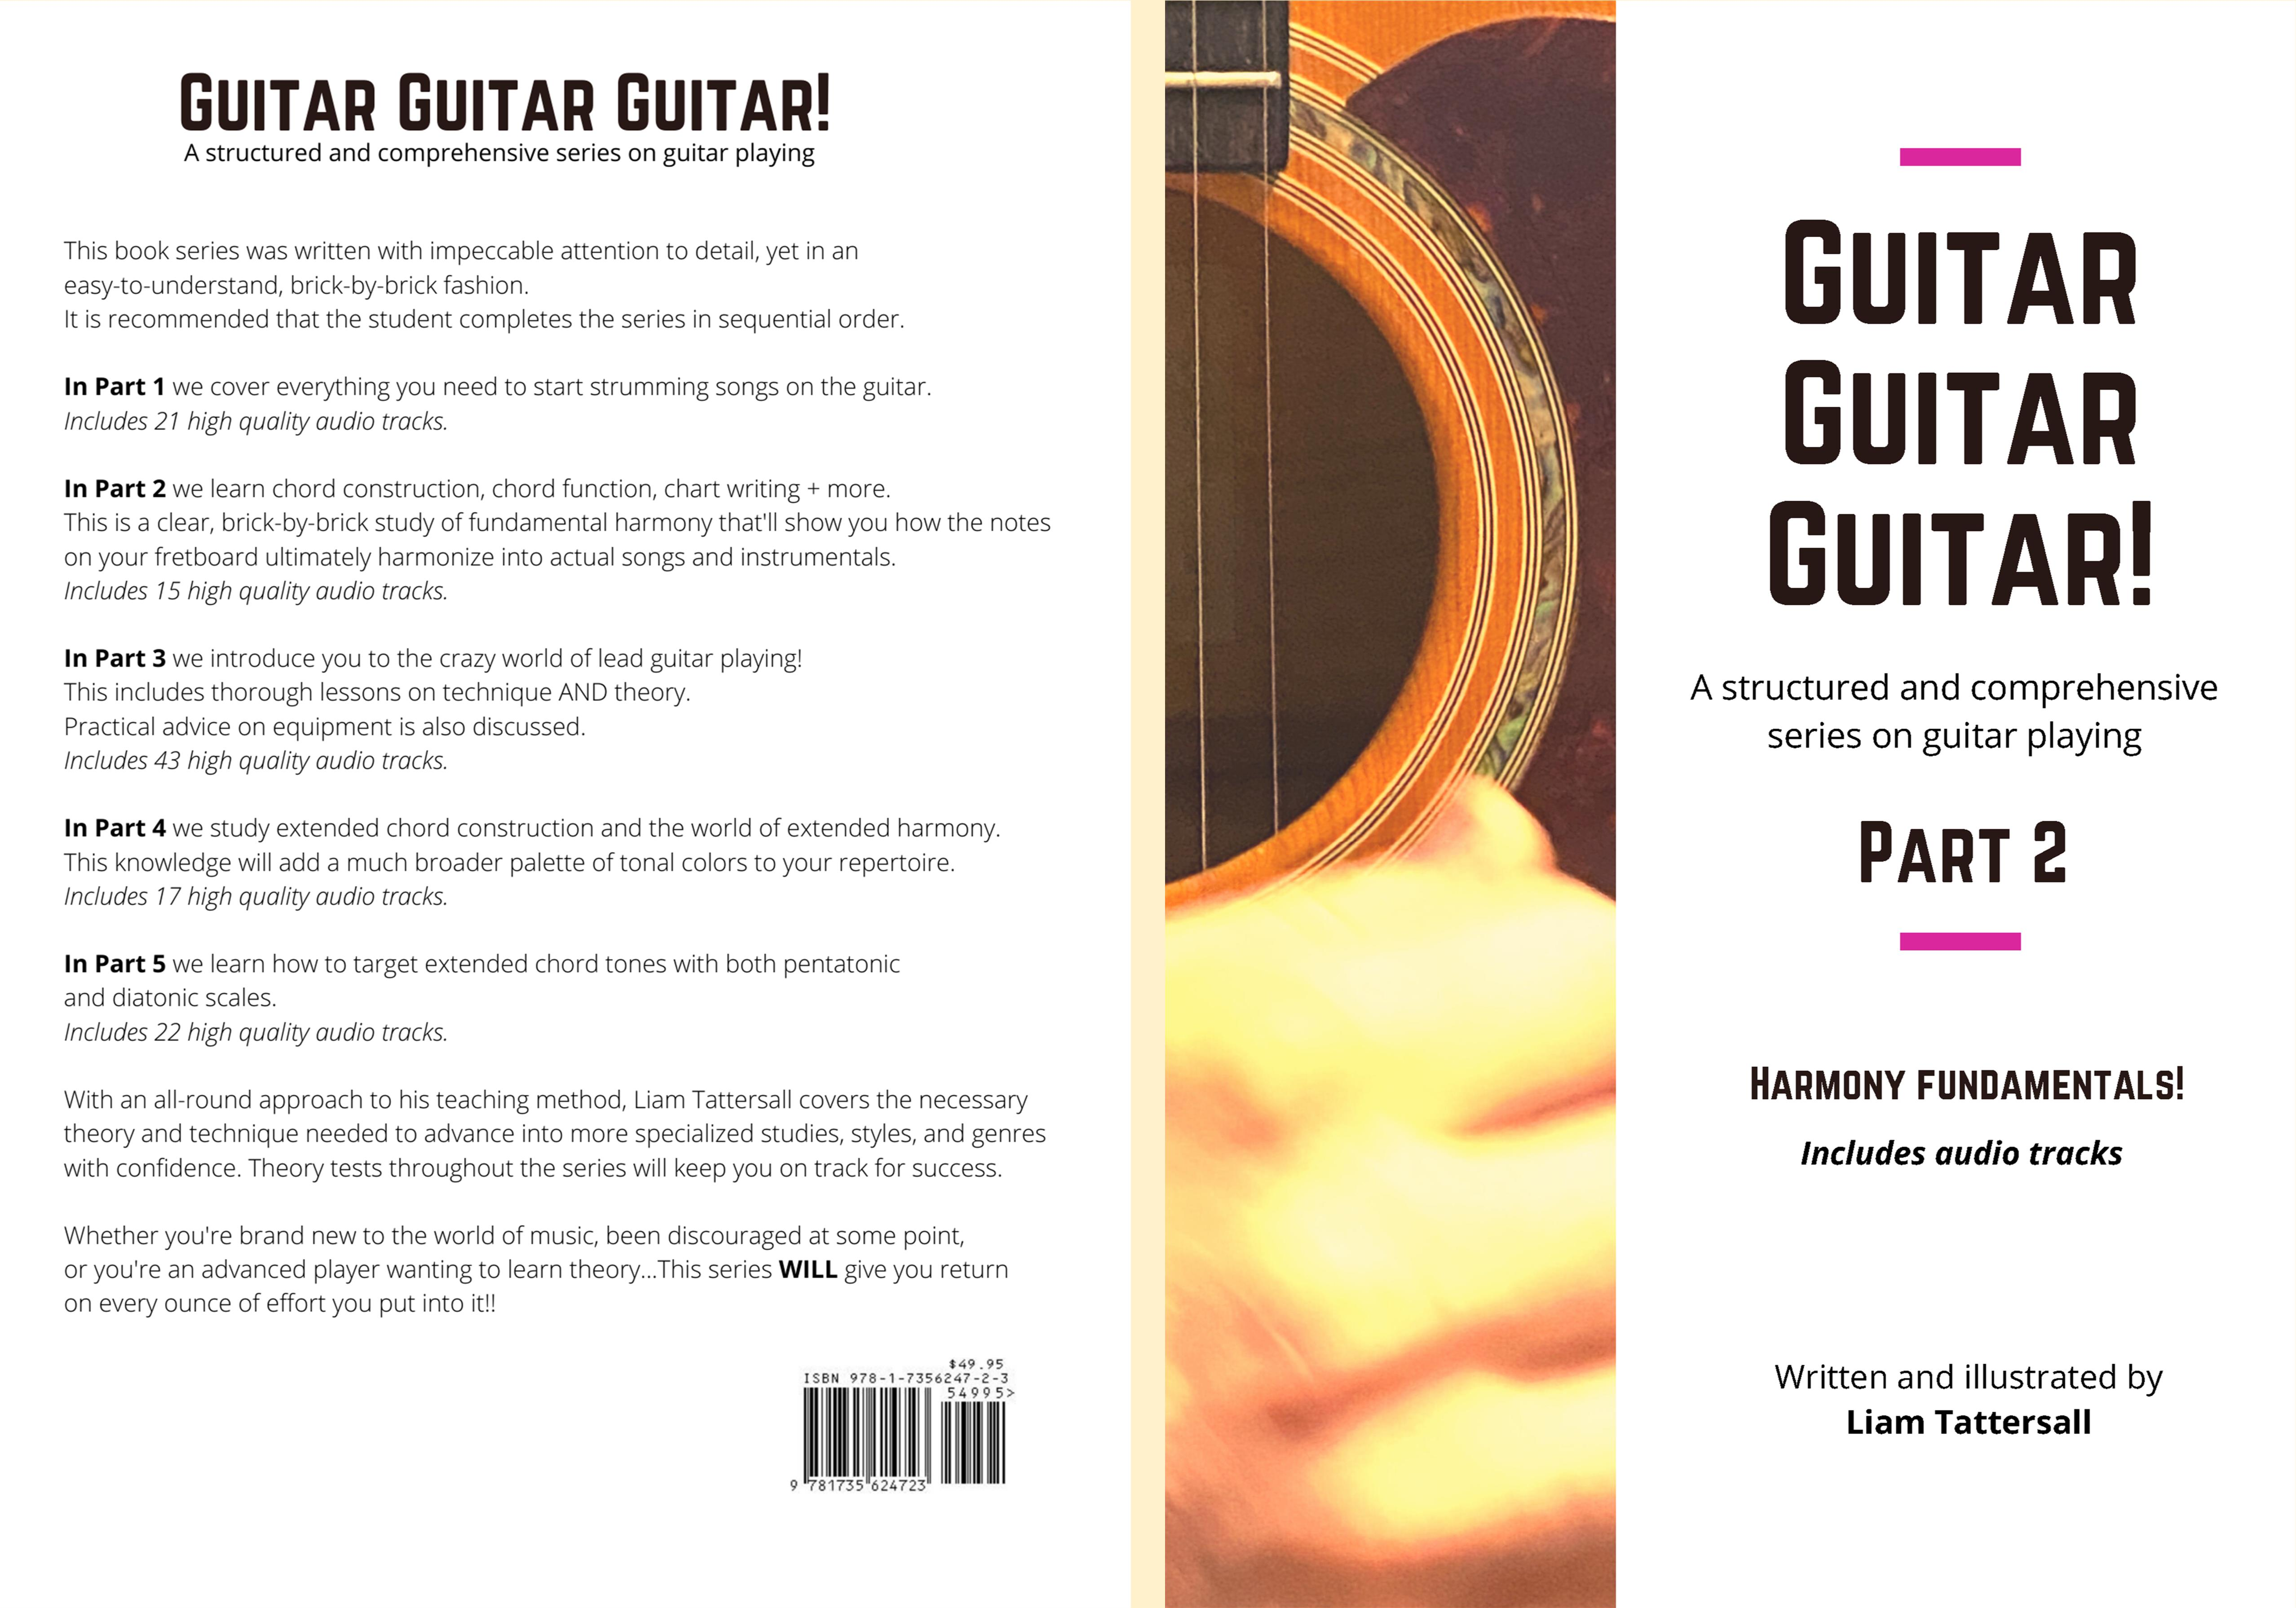 Guitar Guitar Guitar! A structured and comprehensive series on guitar playing - Part 2 - Harmony Fundamentals! cover image